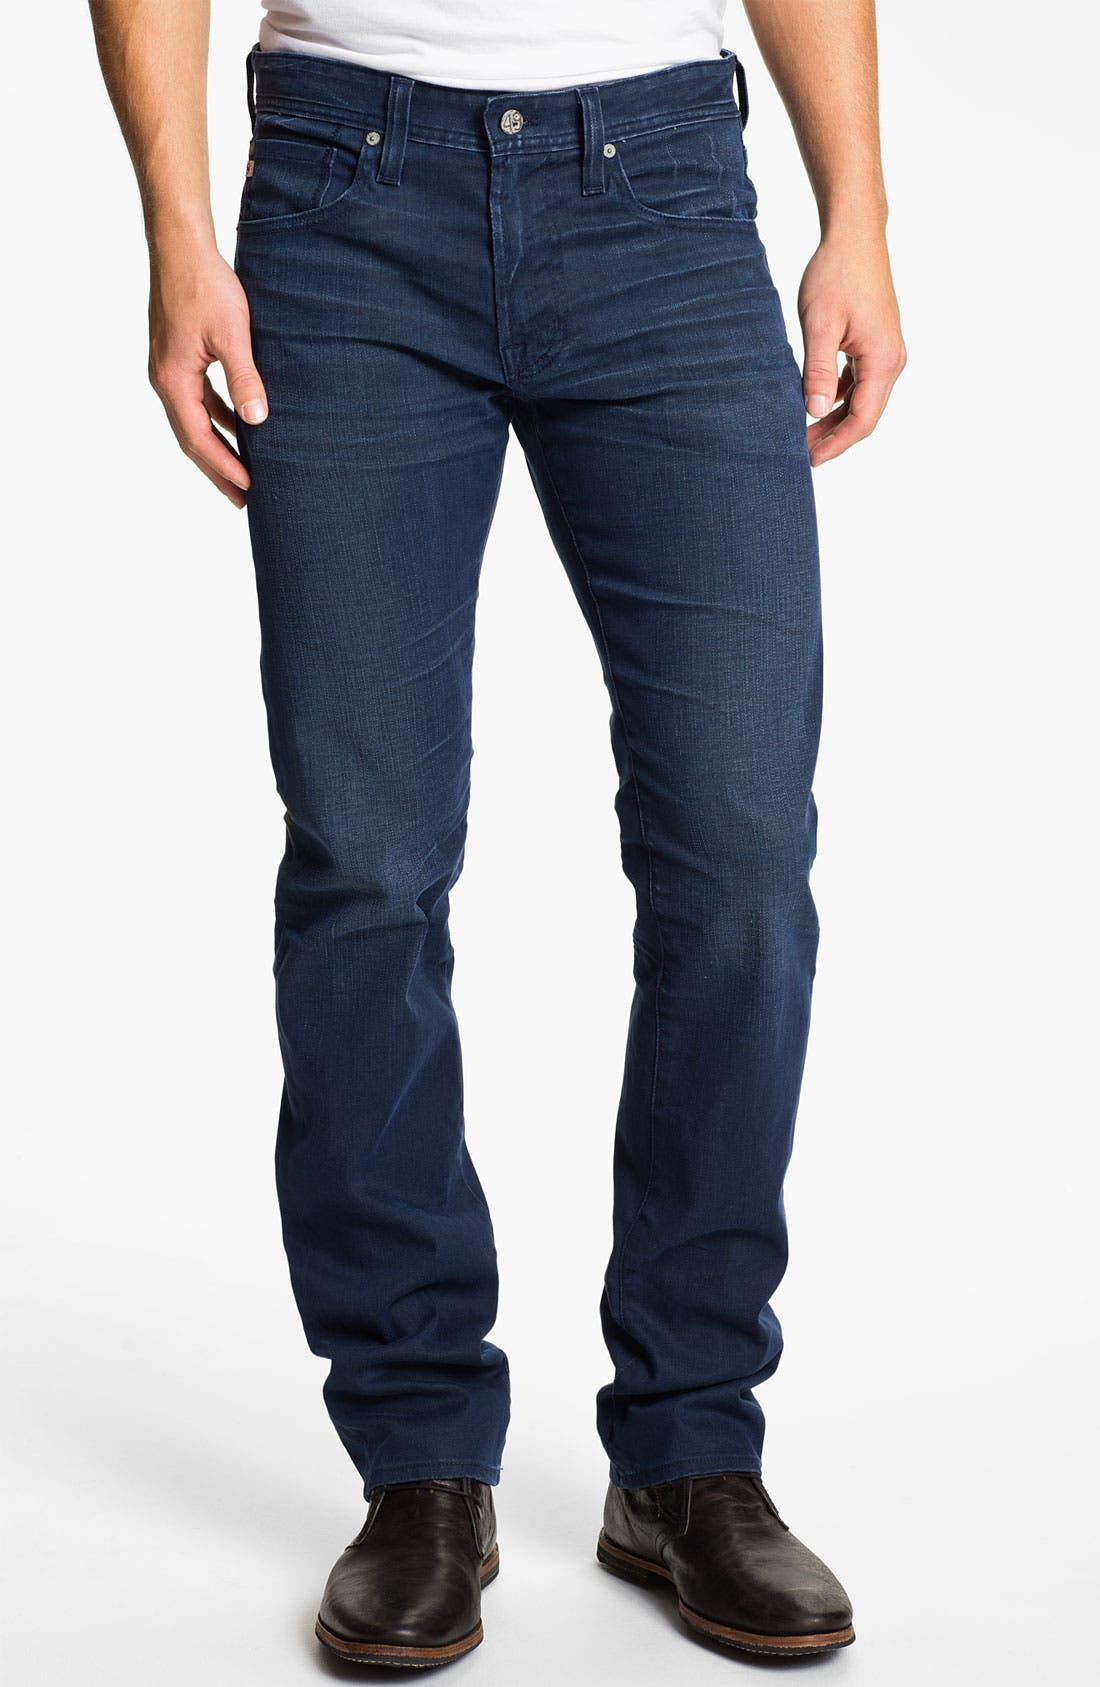 Alternate Image 1 Selected - AG Jeans 'Matchbox' Slim Fit Jeans (3 Year Coated)